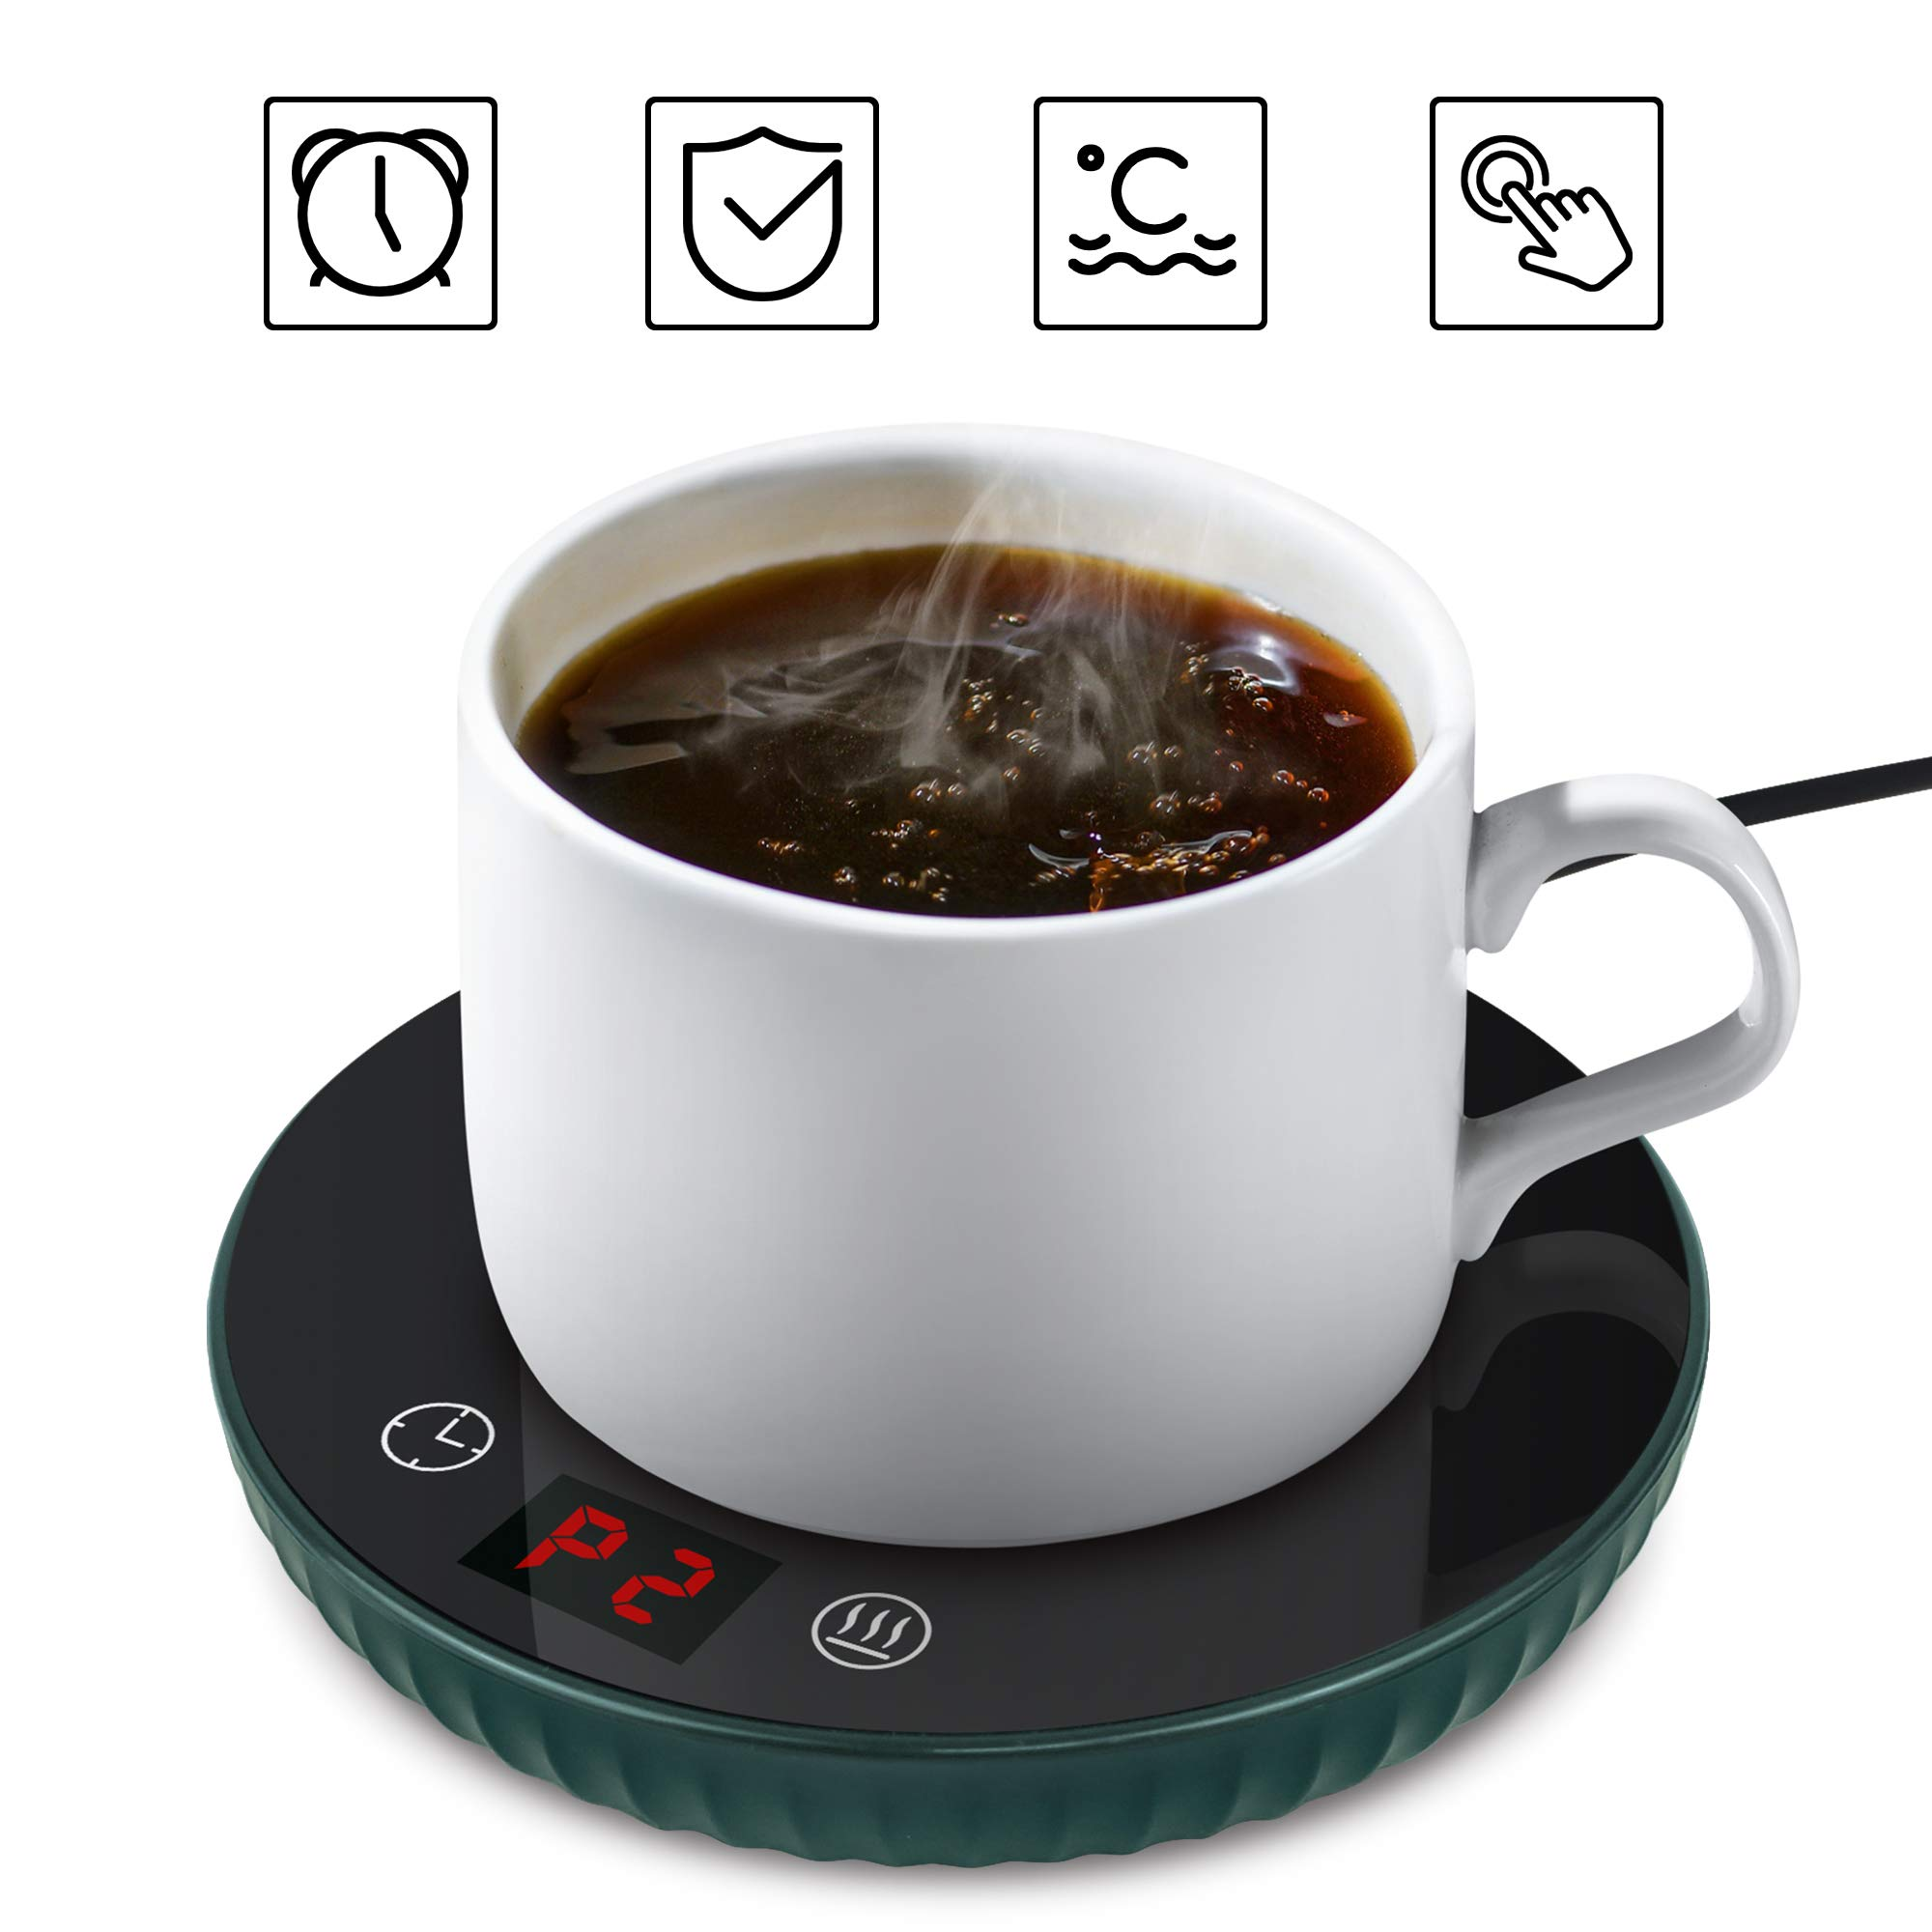 Coffee Warmer with Auto Shut Off Warm Up Cold Water to Hot and Keep Hot Water Adjustable 120℉-140℉(40-60℃) Electric Beverage Mug Warmer for Home Office Desk Use, Candle Wax Cup Heater Heating Plate, Smart Slim and Security